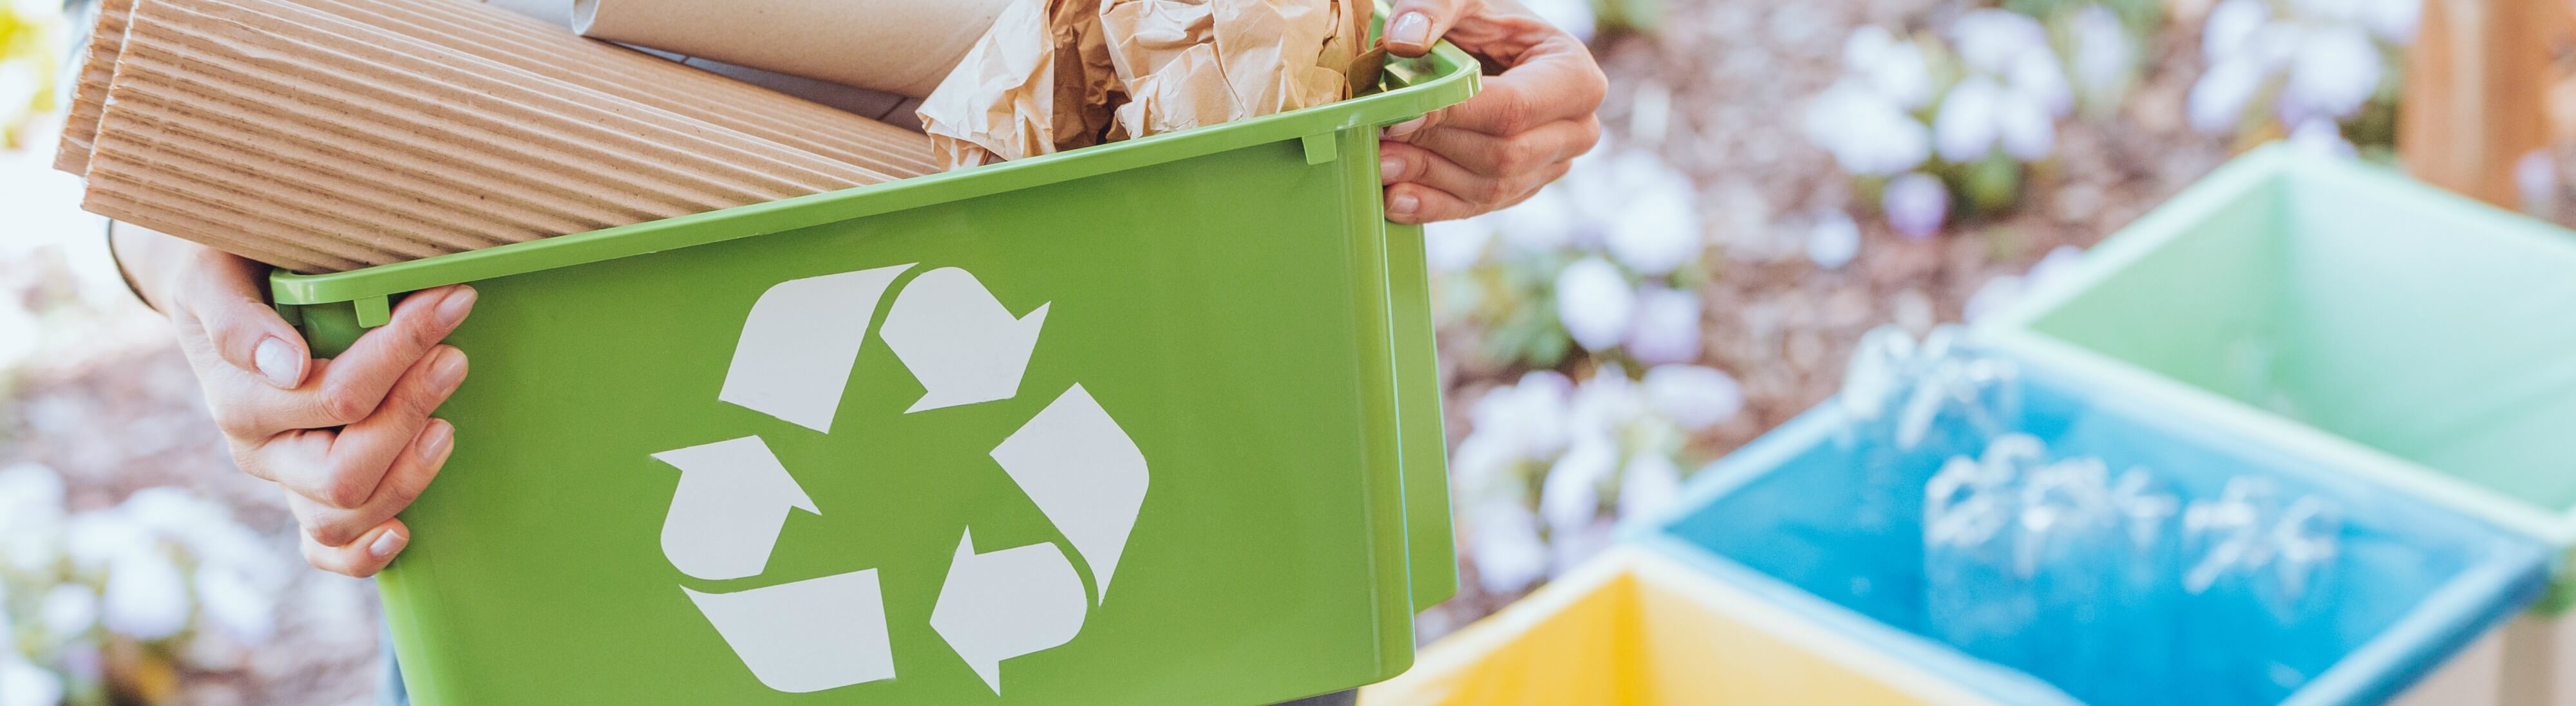 Going green: 6 ways to make your business more eco-friendly